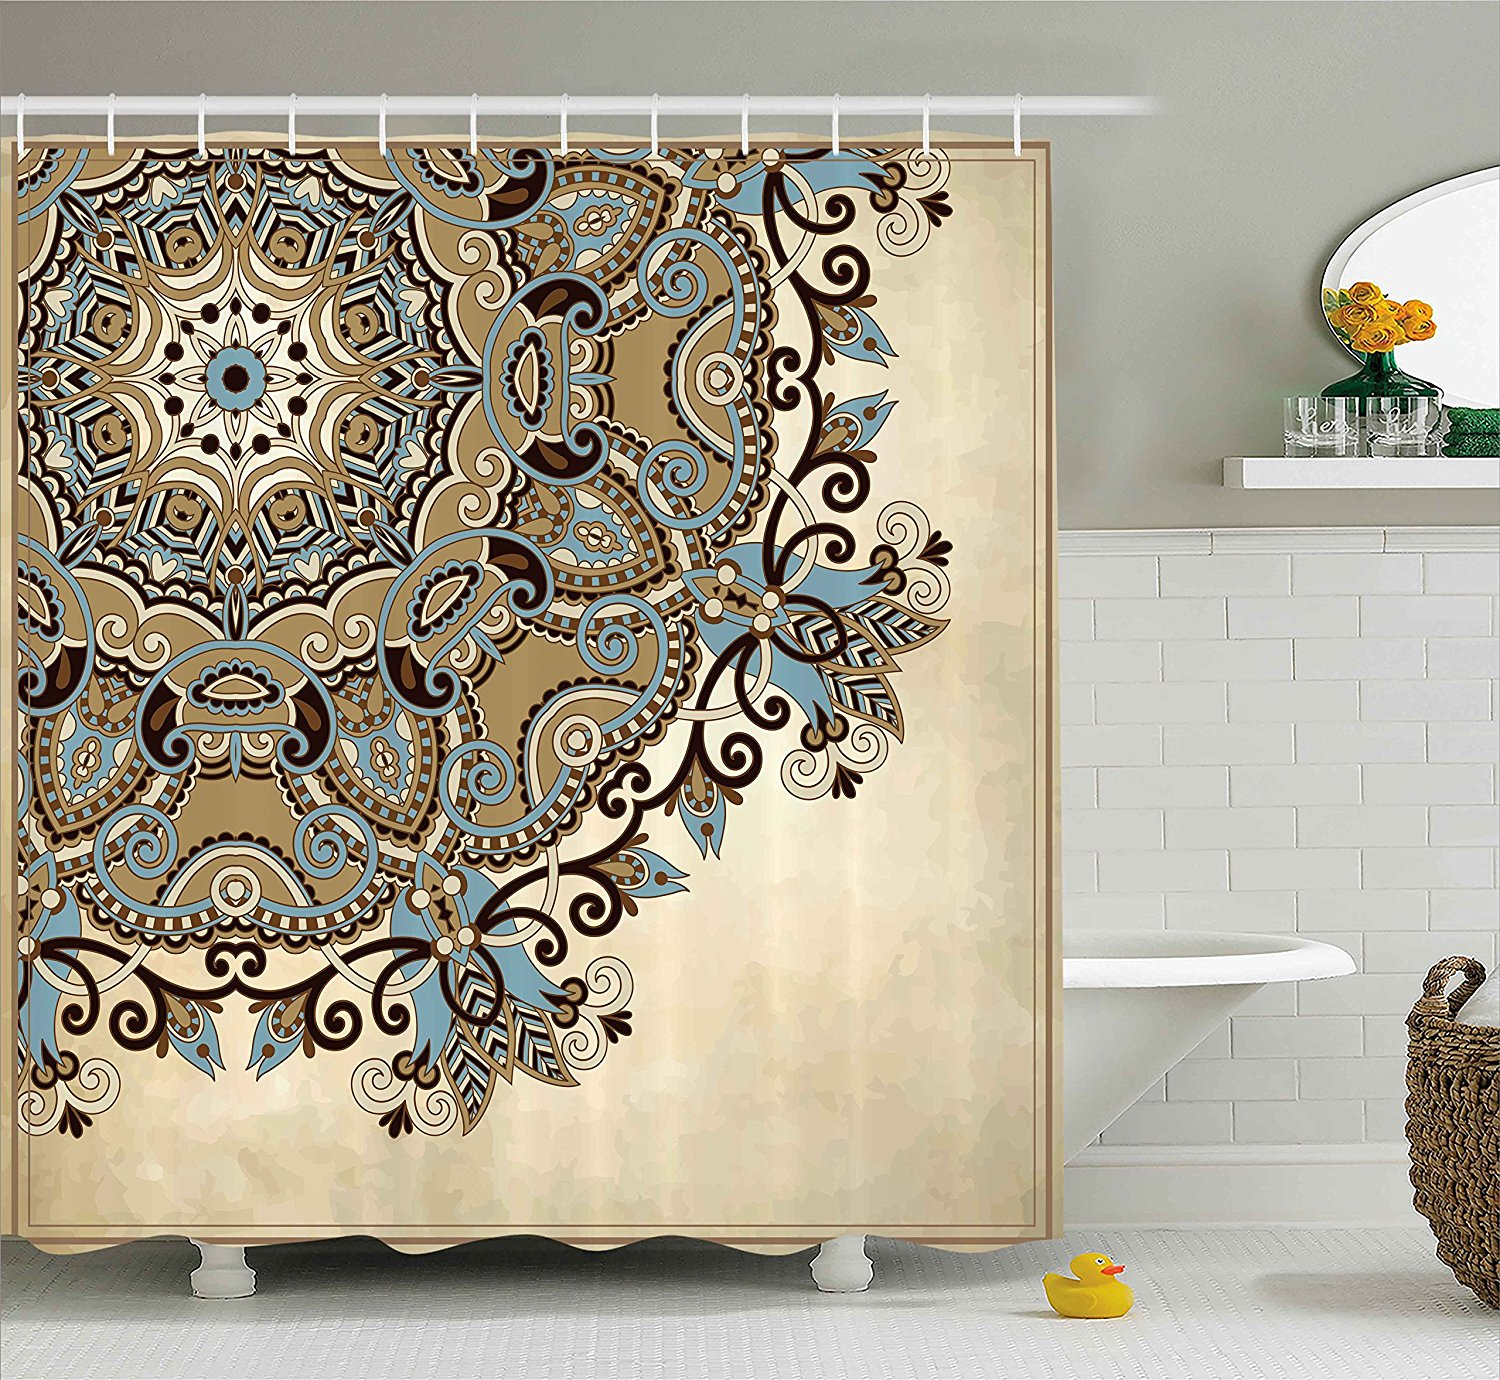 Mandala Shower Curtain Ethnic Indian Flower Circle On Lace Ornaments Traditional Boho Design Fabric Bathroom Decor Set In Curtains From Home Garden